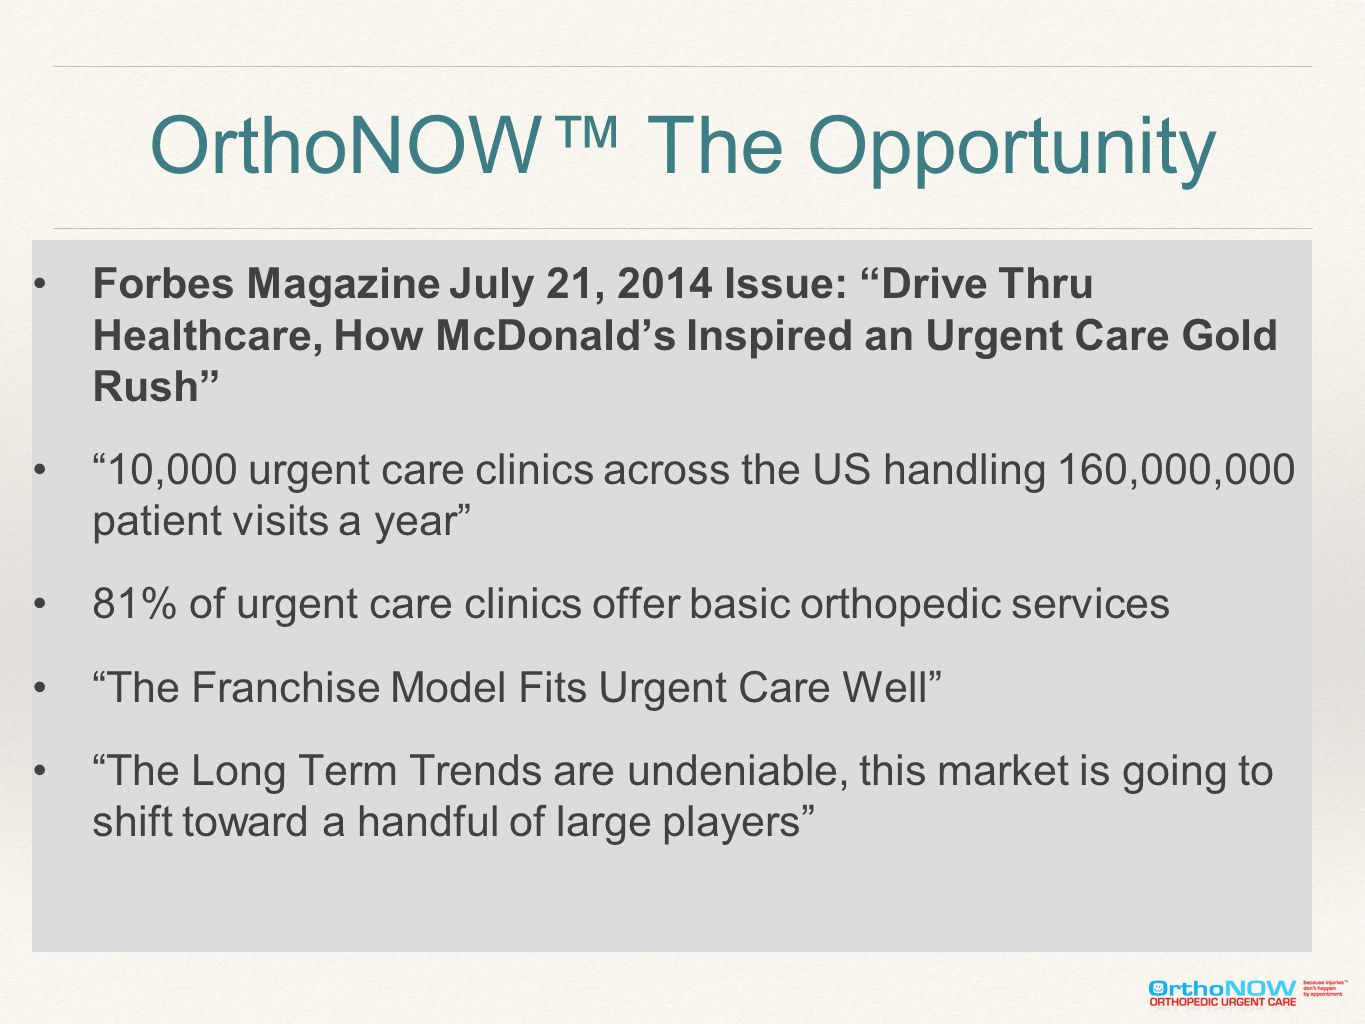 OrthoNOW™ The Opportunity Forbes Magazine July 21, 2014 Issue: Drive Thru Healthcare, How McDonald's Inspired an Urgent Care Gold Rush 10,000 urgent care clinics across the US handling 160,000,000 patient visits a year 81% of urgent care clinics offer basic orthopedic services The Franchise Model Fits Urgent Care Well The Long Term Trends are undeniable, this market is going to shift toward a handful of large players